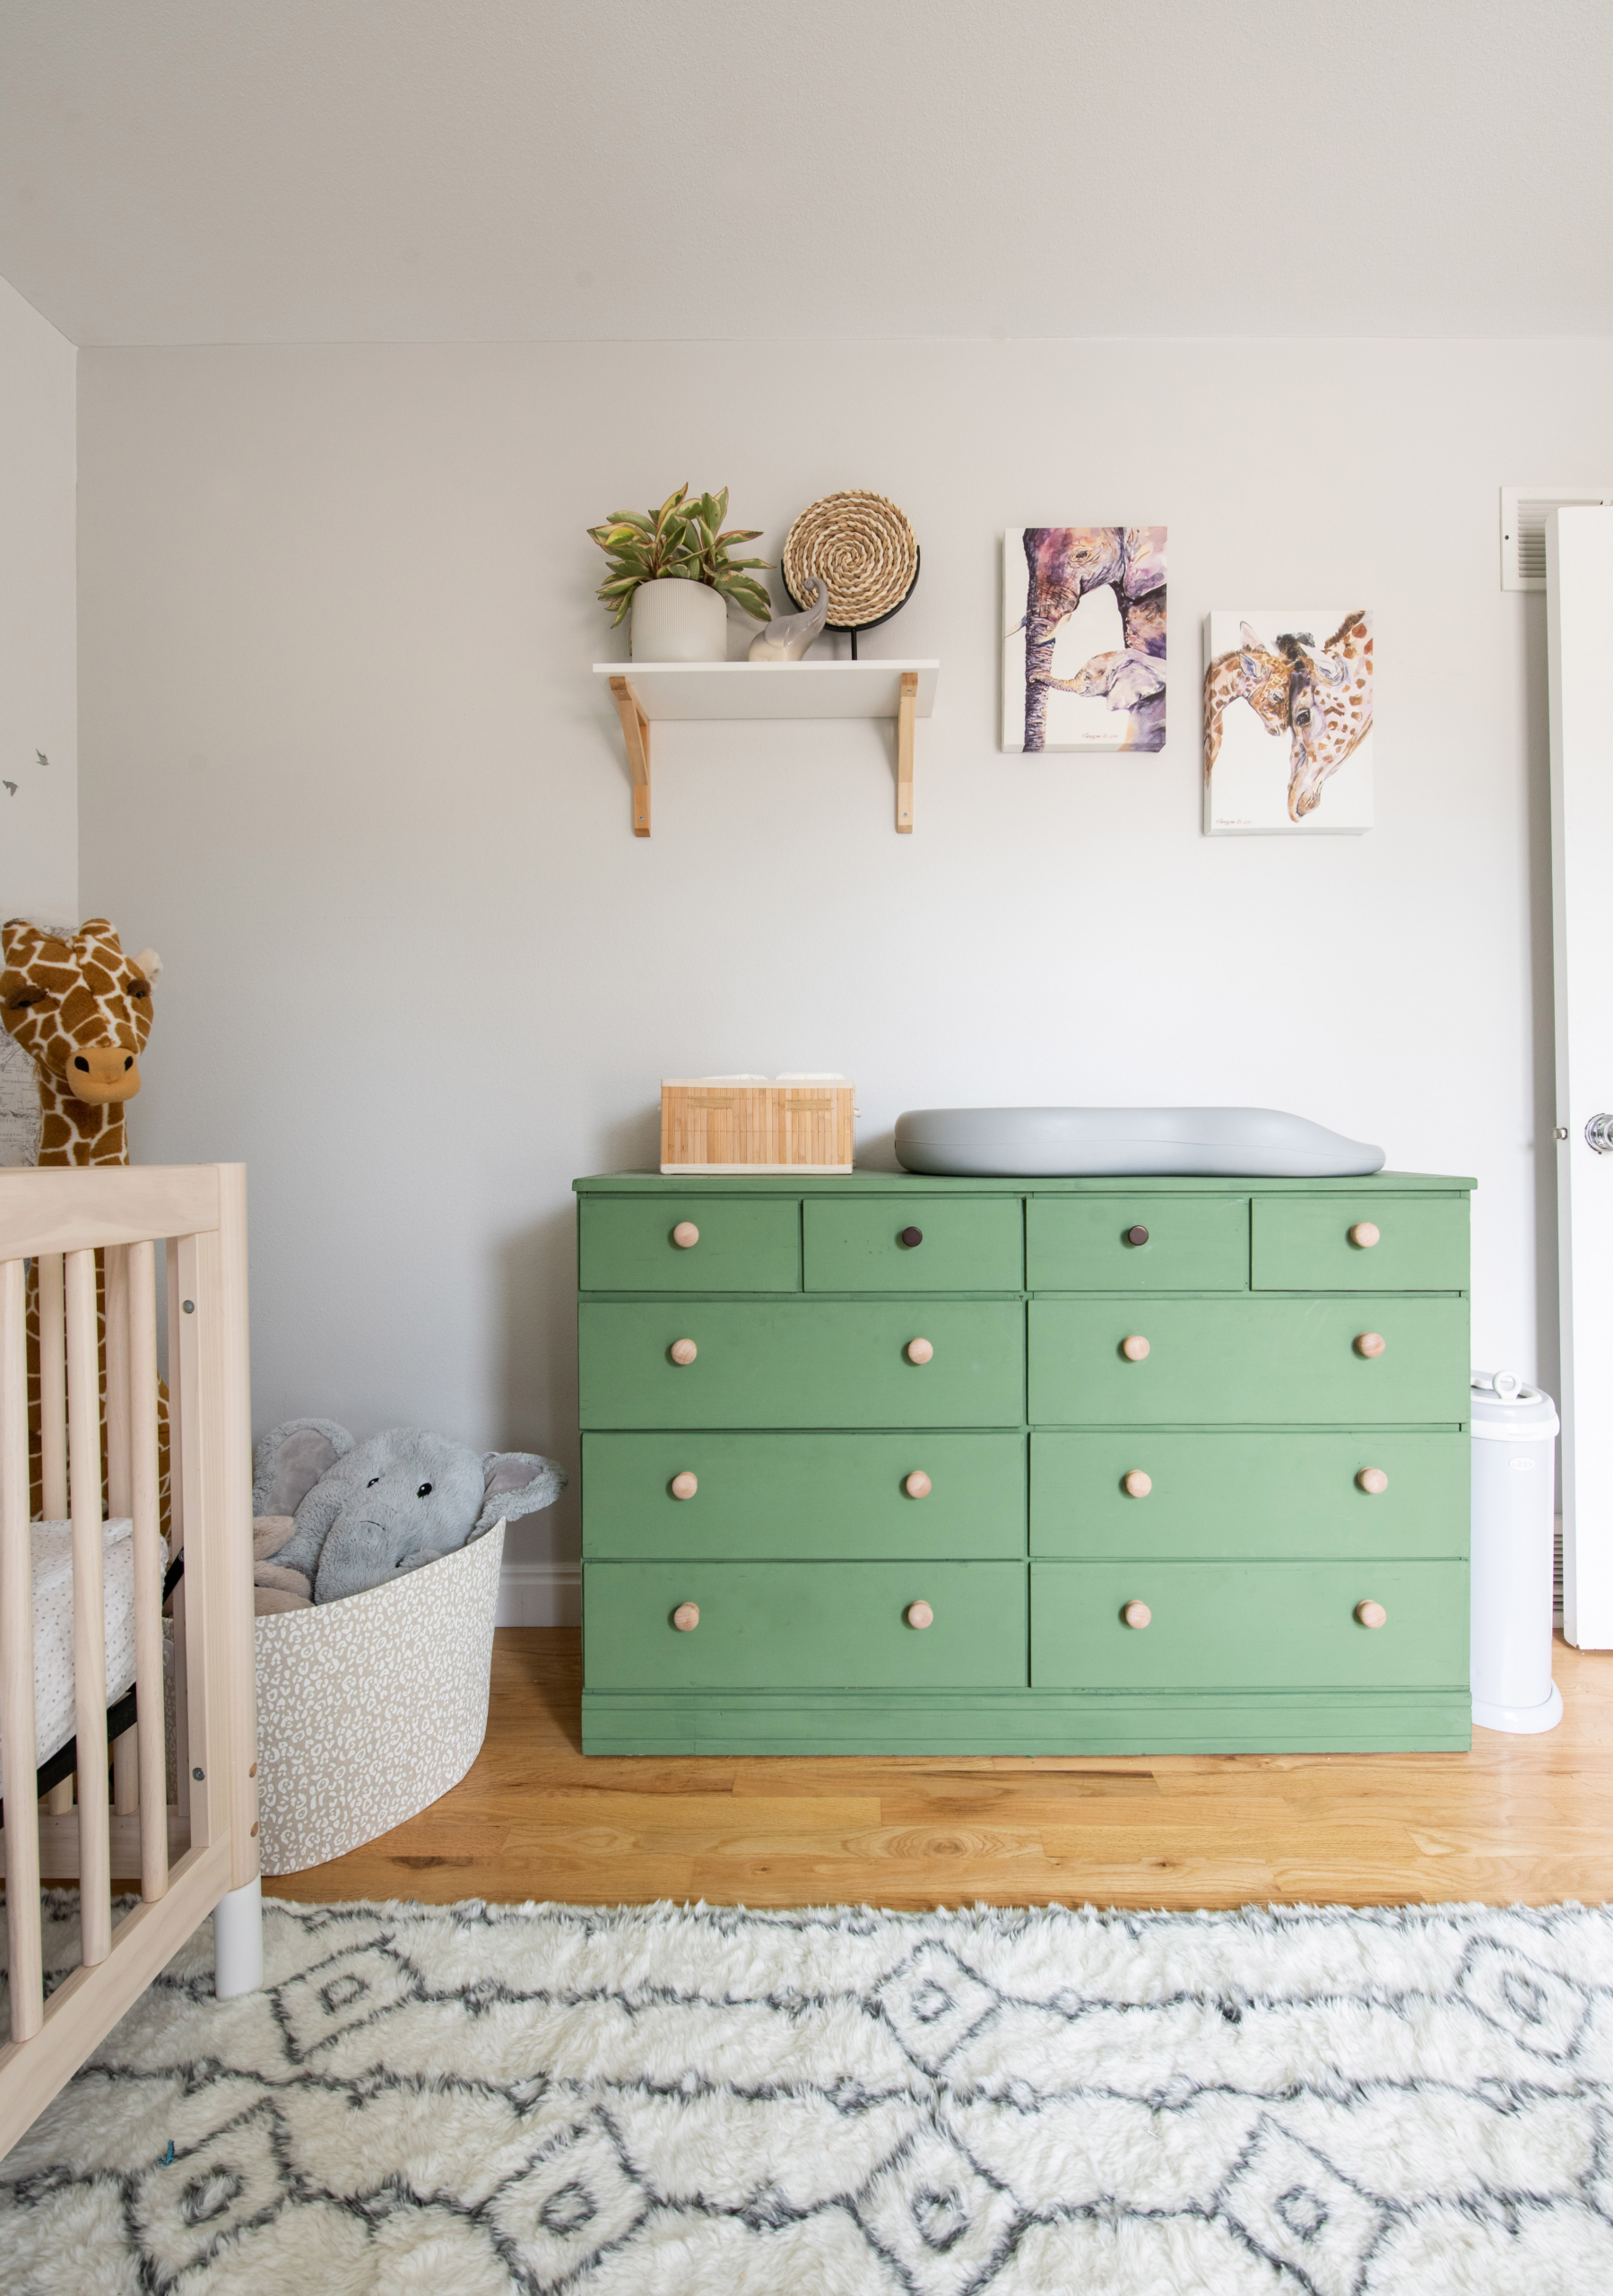 Safari nursery in Louisville CO with green dresser and global accents